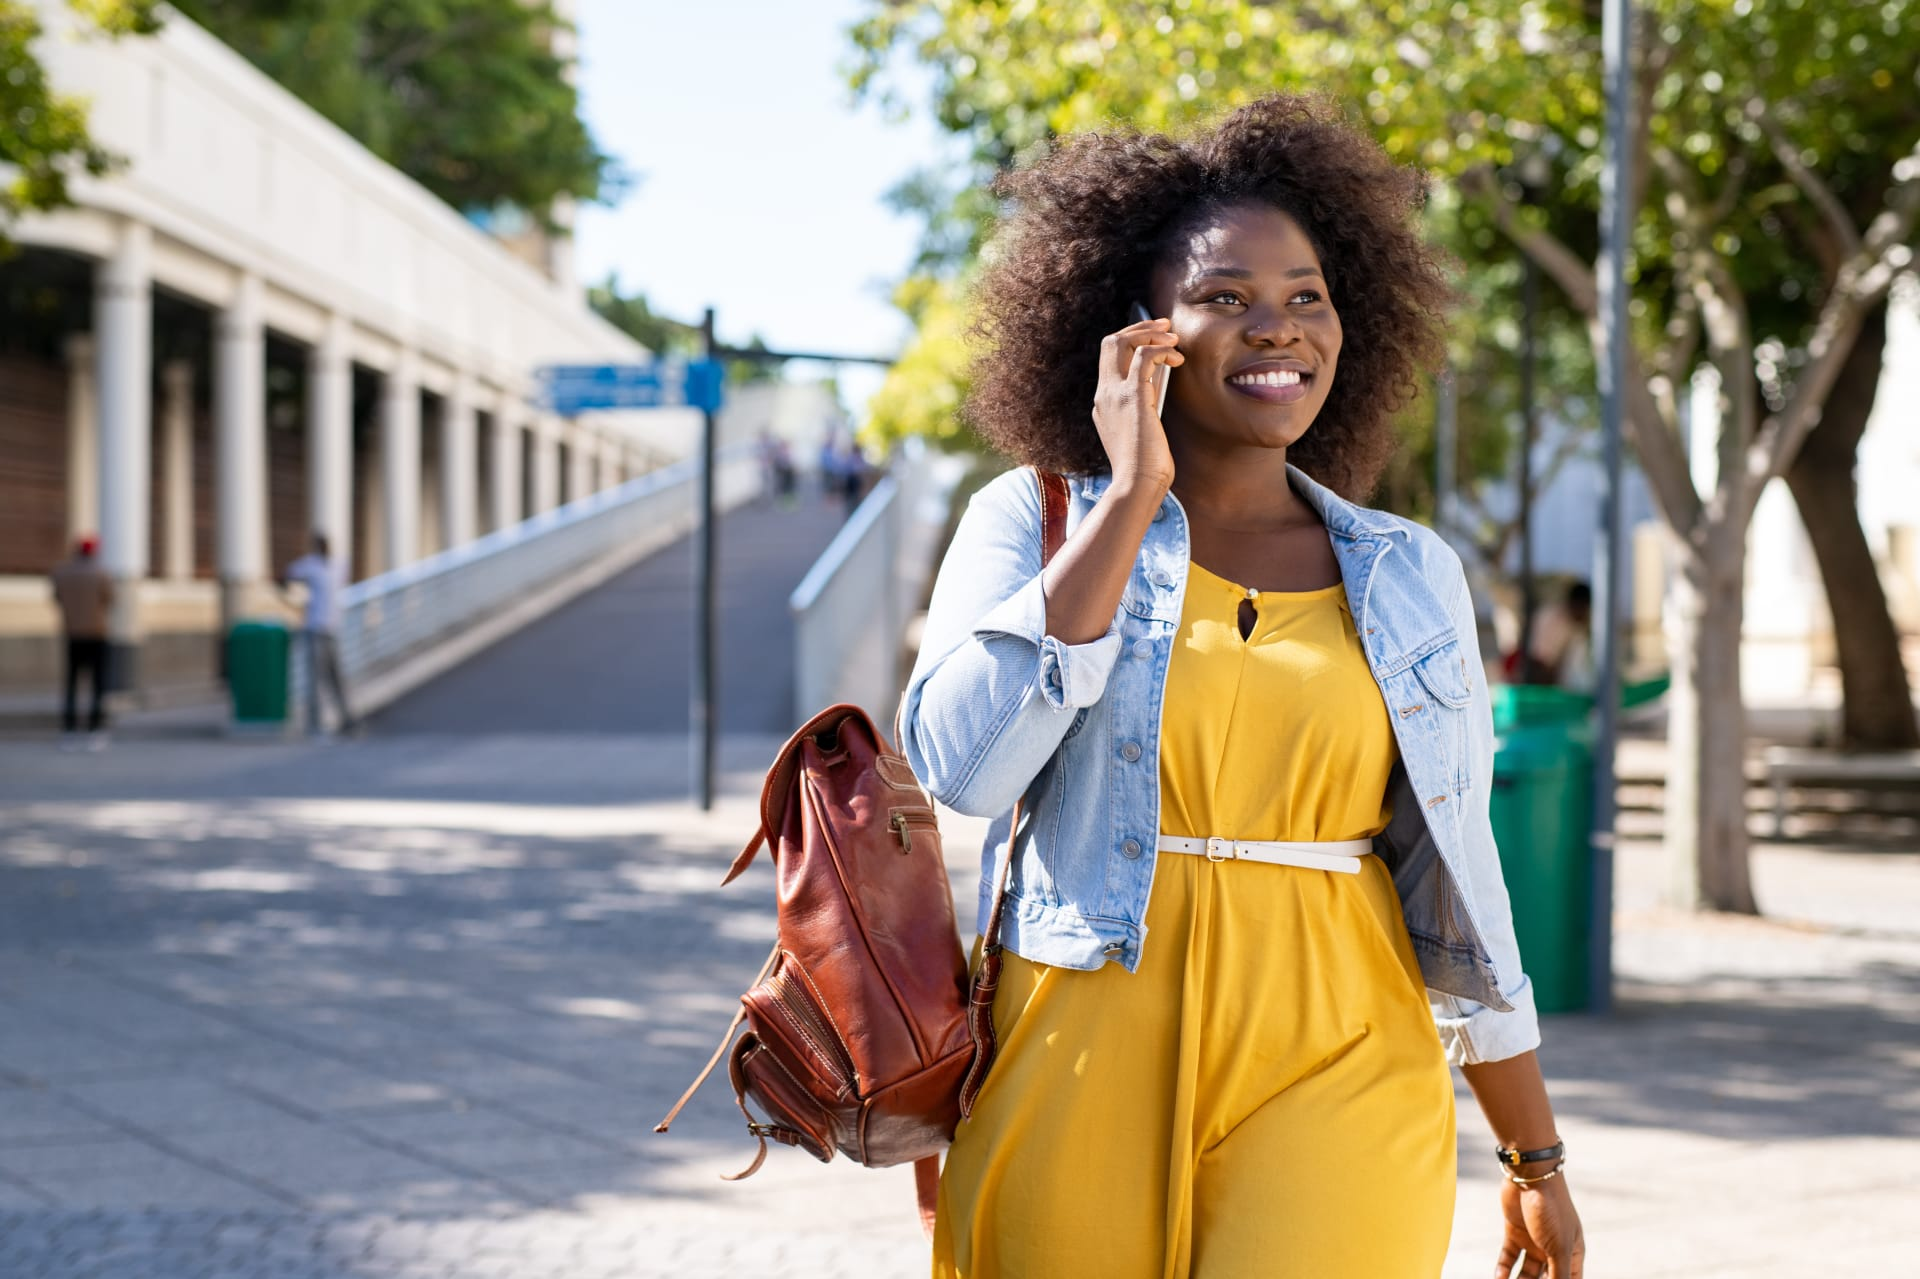 Woman smiling while talking on her phone and wallking down the street